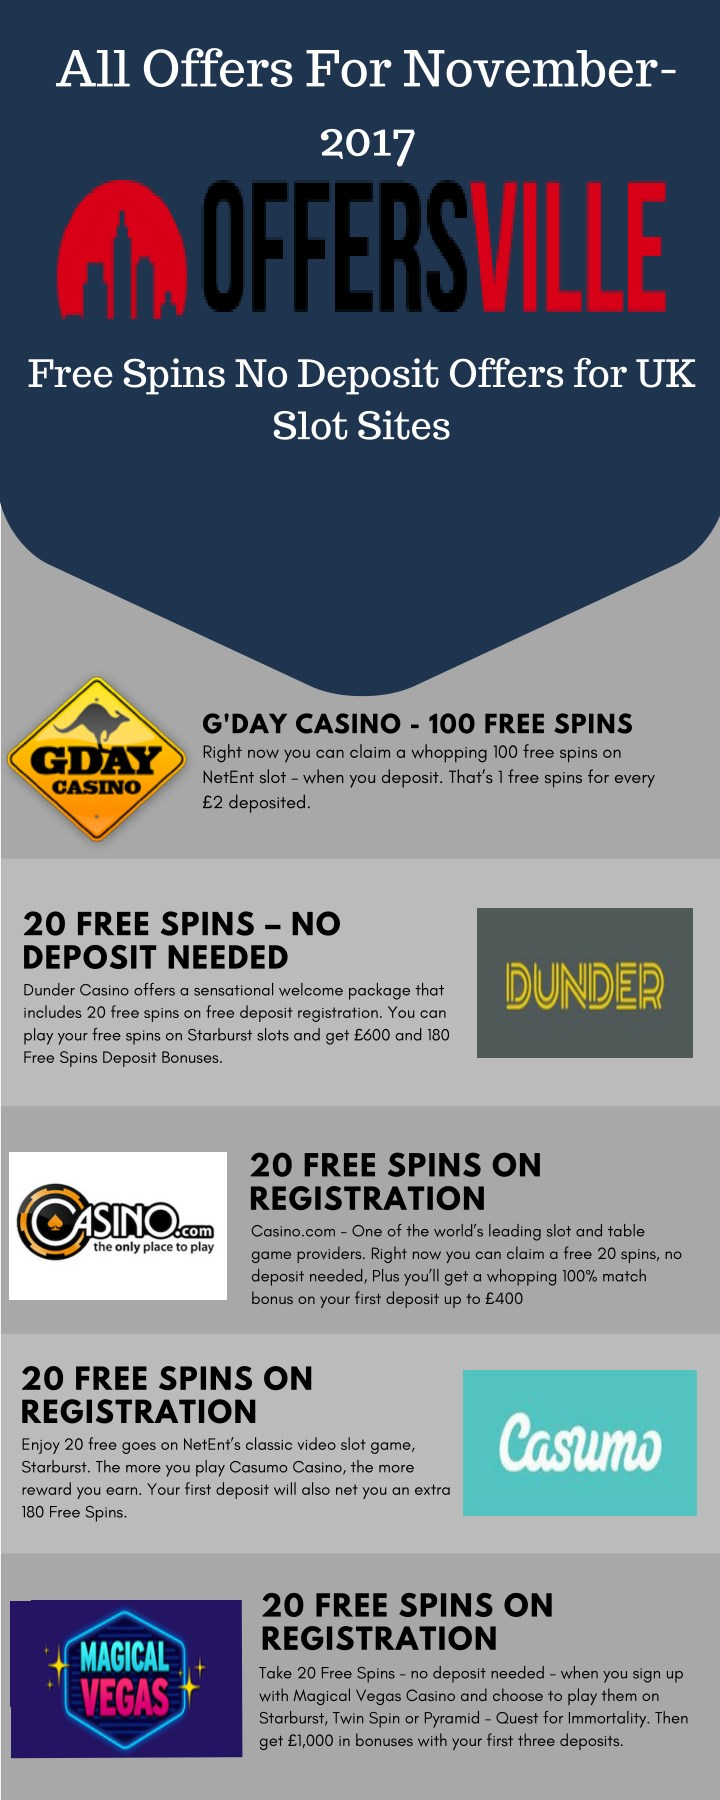 Ppt Free Spins No Deposit Offers For Uk Slot Sites Offersville